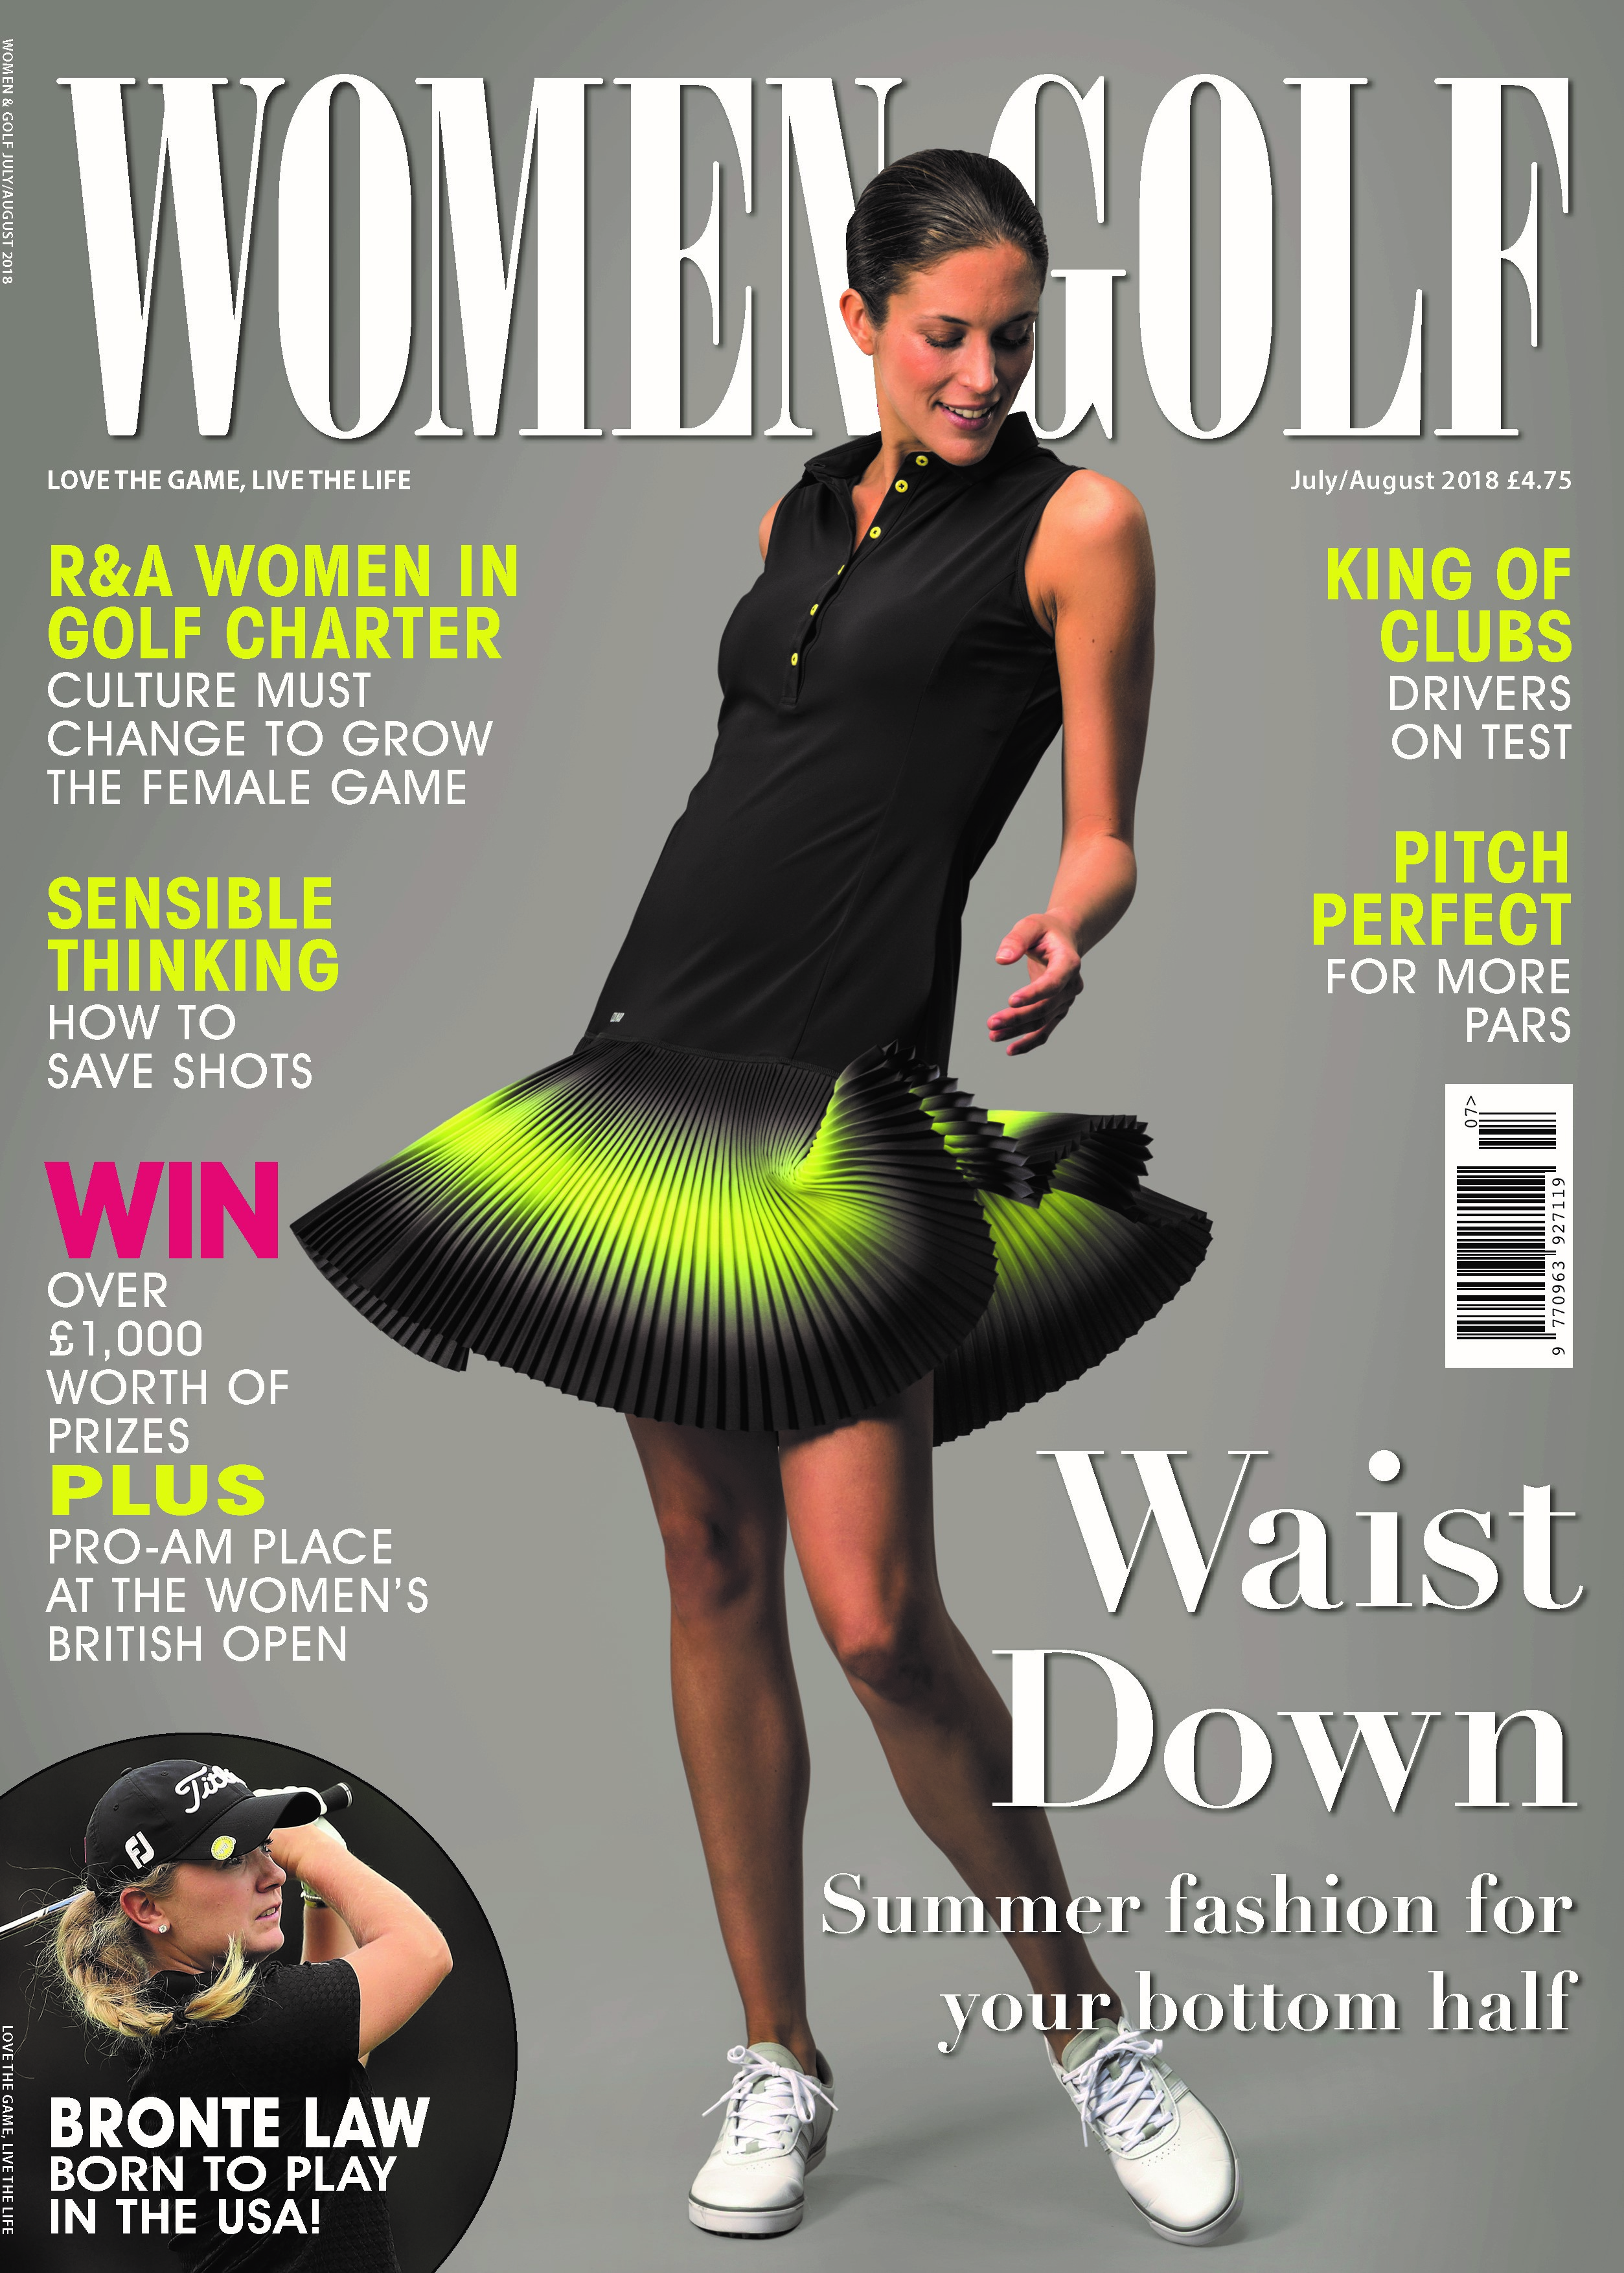 Women and Golf JulAug 18 front cover